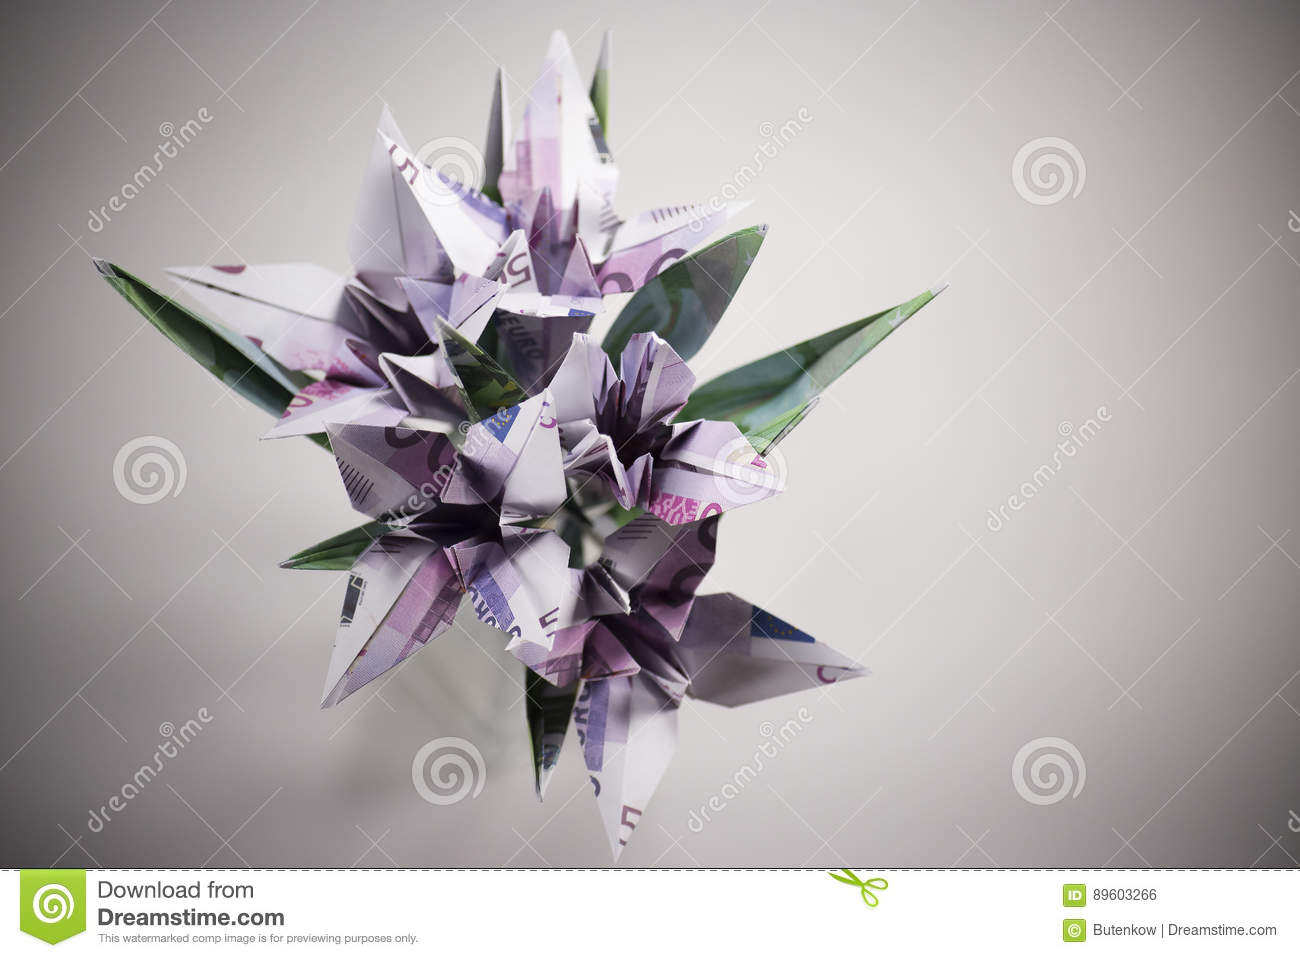 Flowers Origami Banknotes Stock Photo Image Of Income 89603266